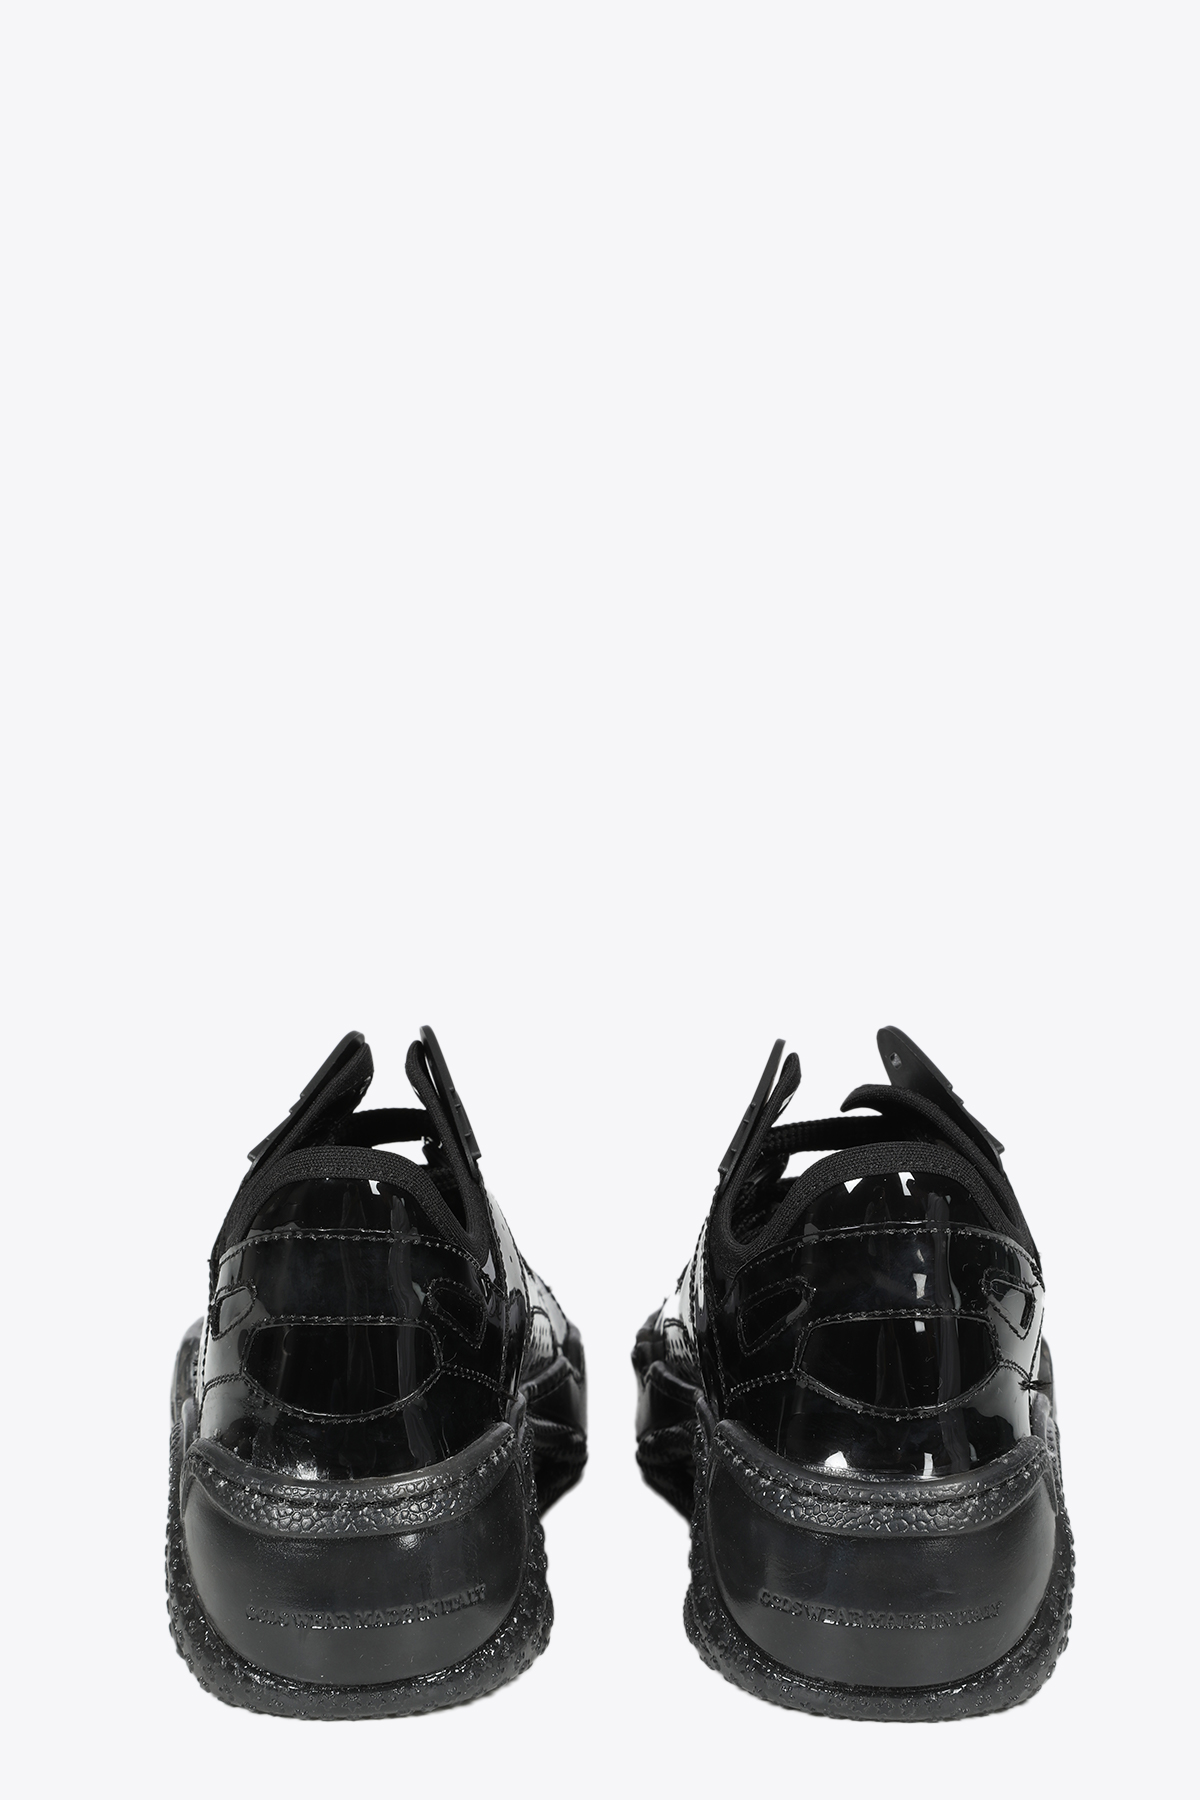 TRANSPARENT SKATE SNEAKERS GCDS | 10000039 | SS21M010003 TRANSPARENT SKATE SNEAKERS02